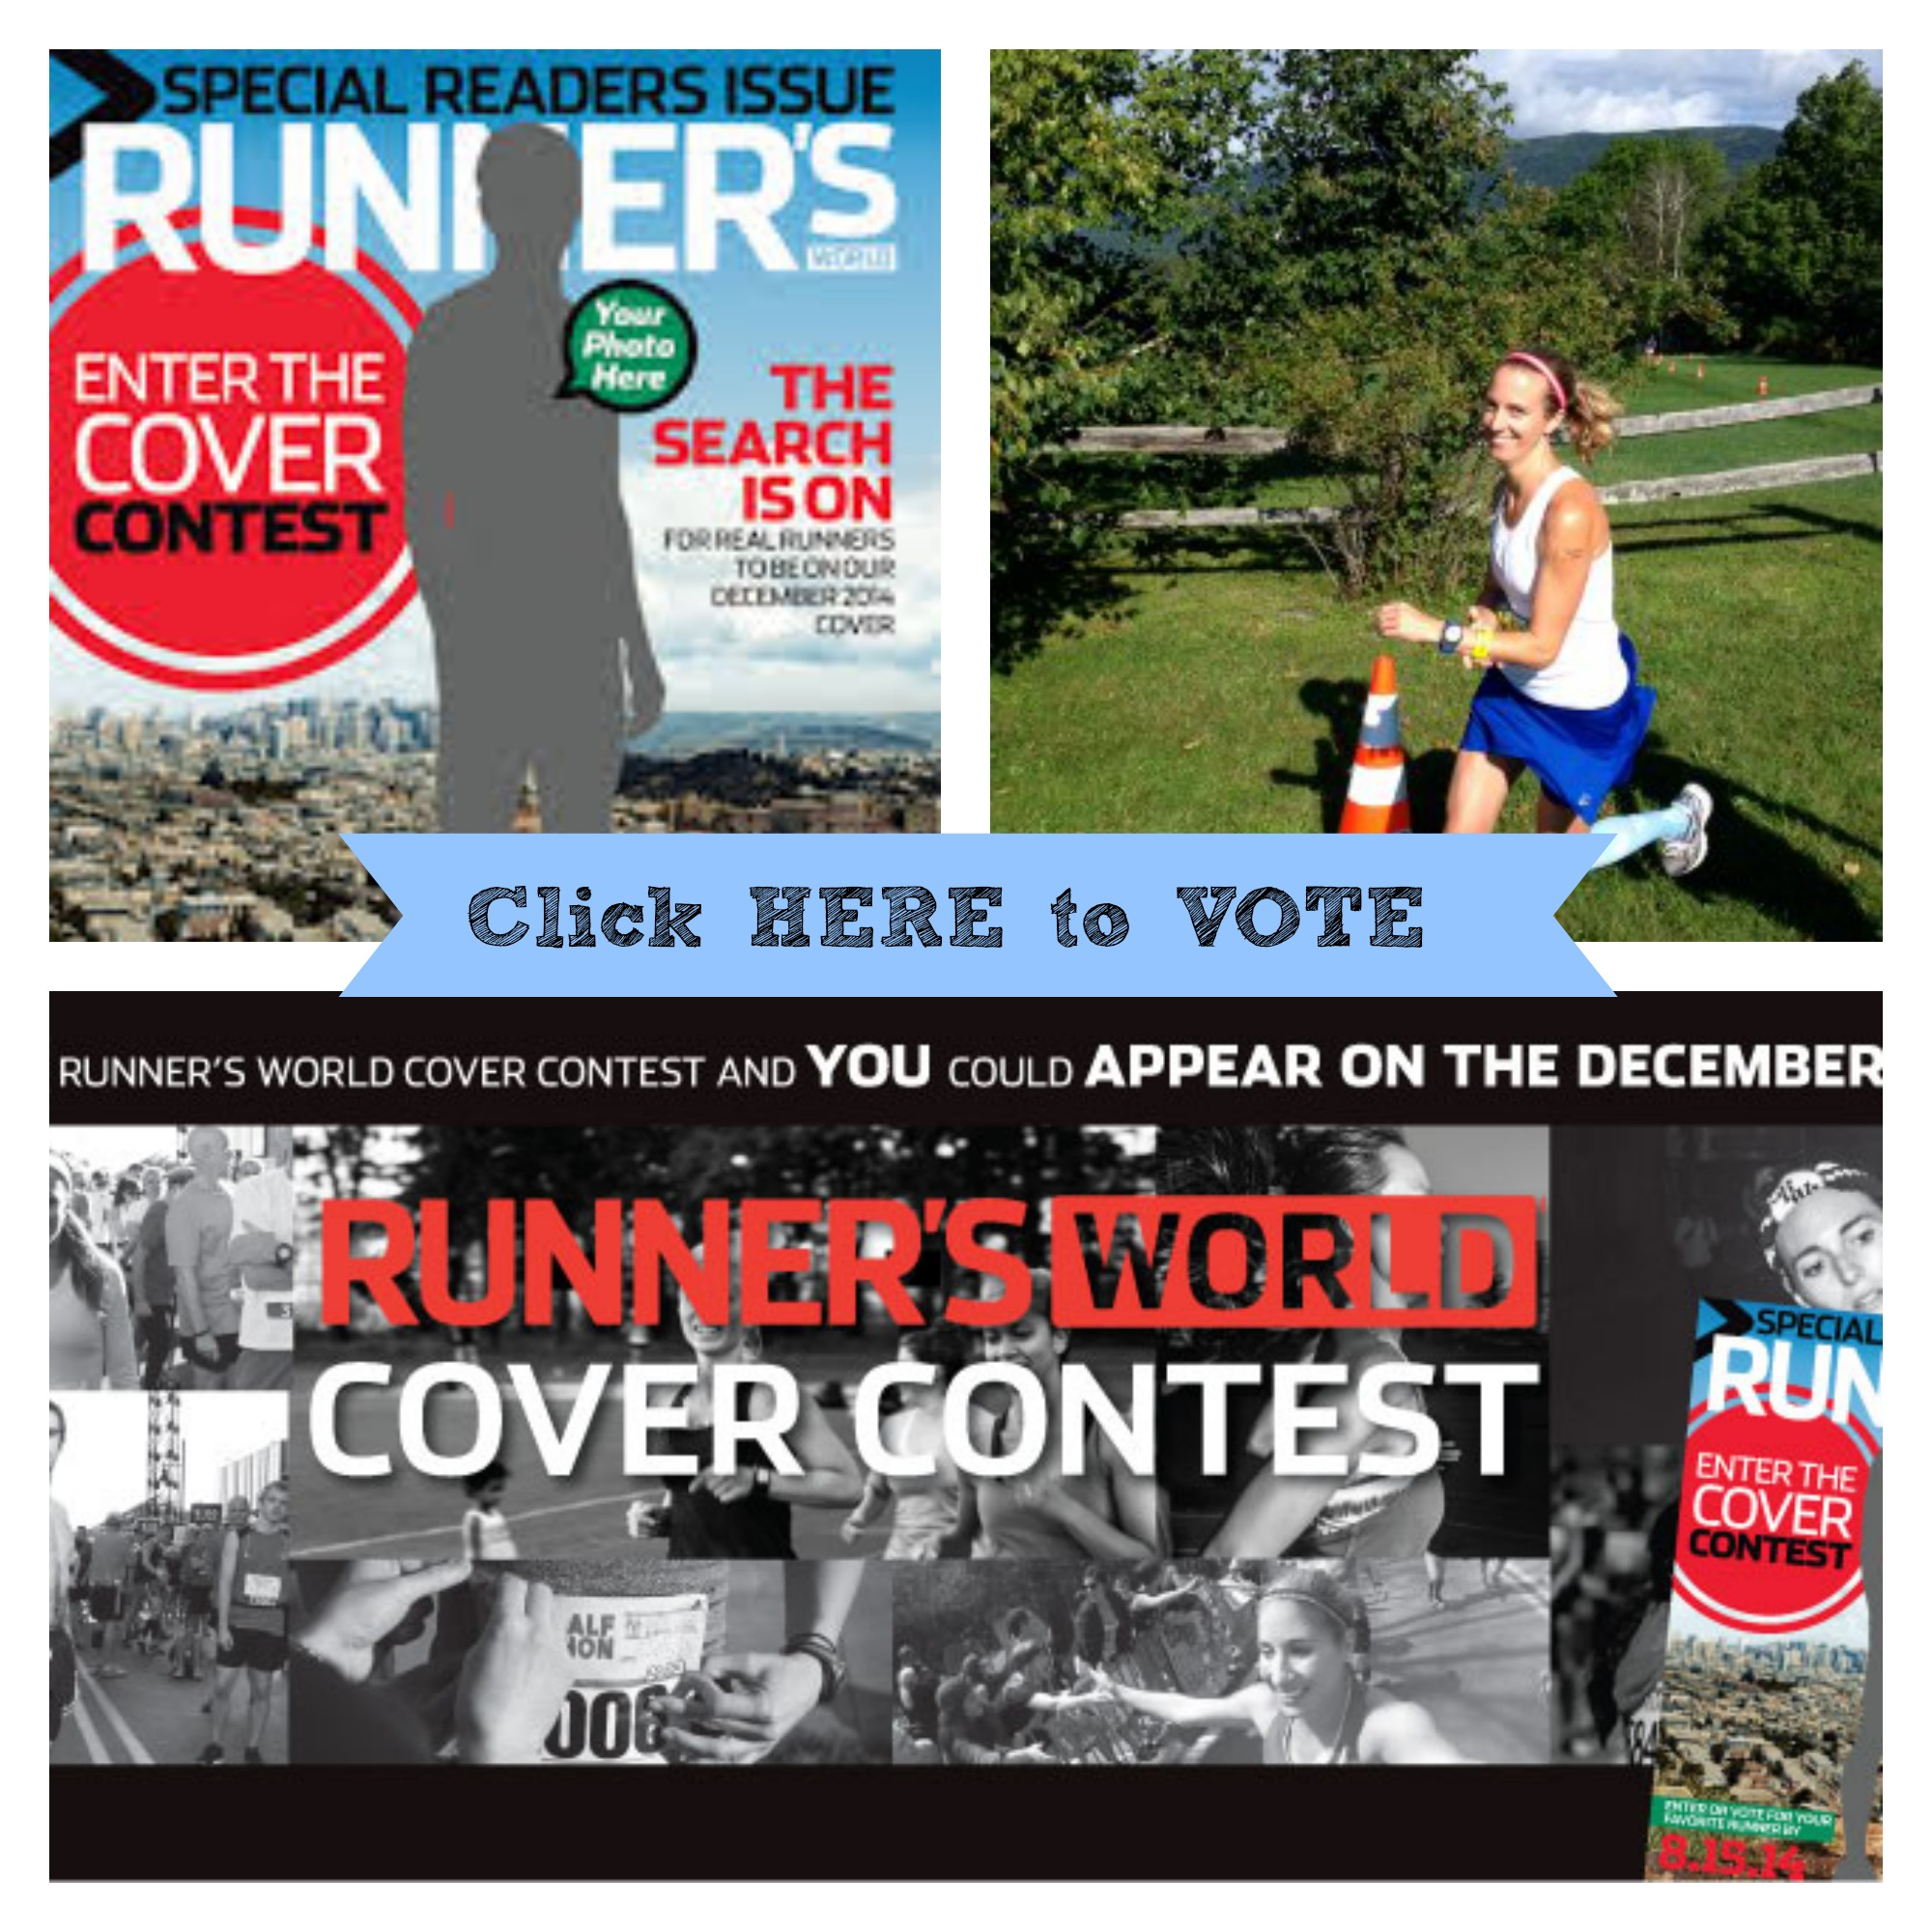 Runner's World Cover Contest Voting